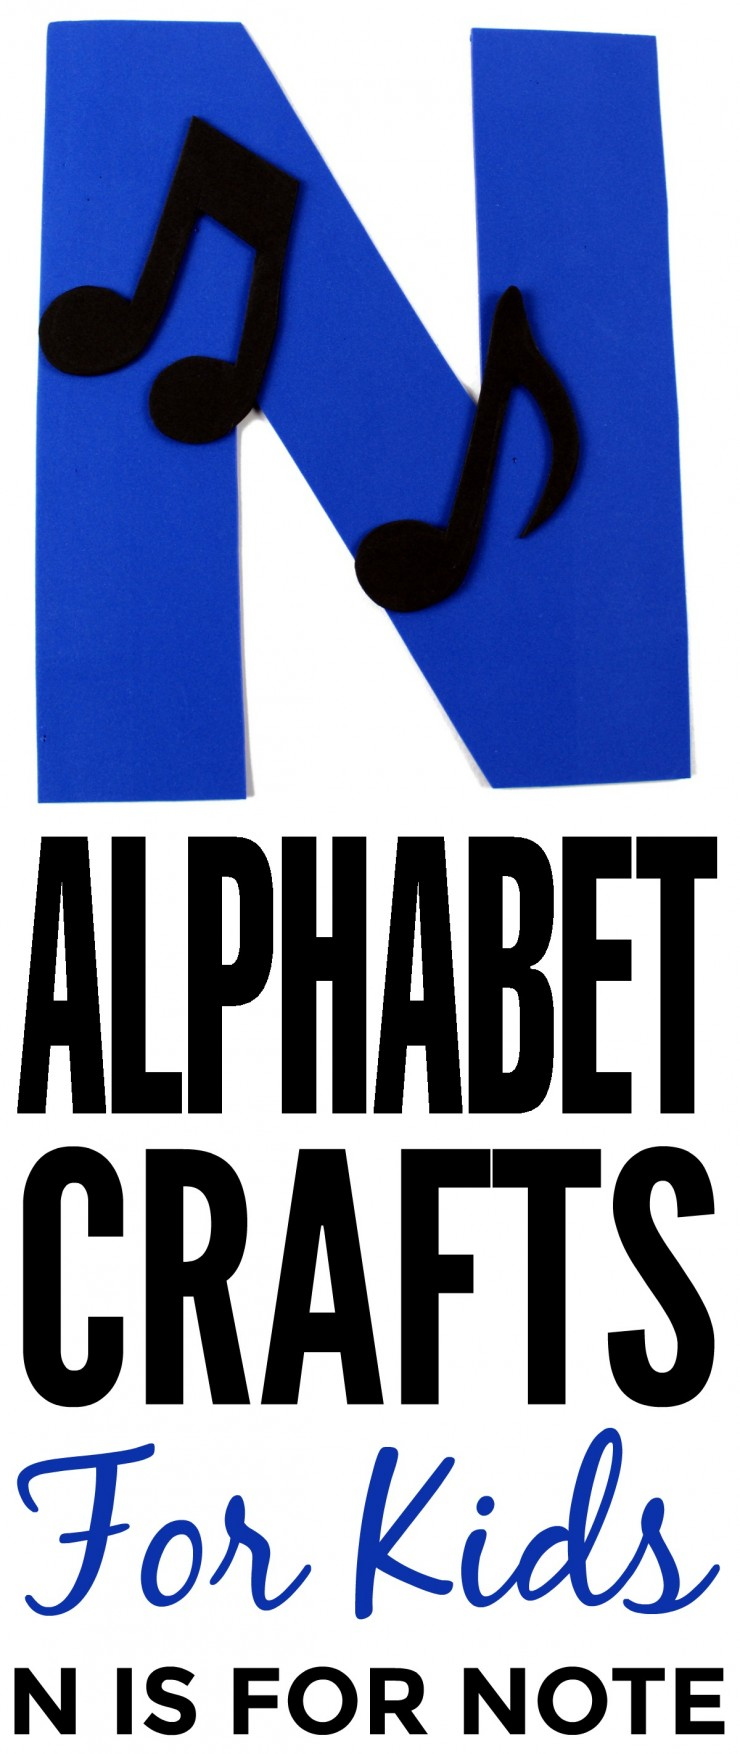 This week in my series of ABCs kids crafts featuring the Alphabet, we are doing a N is for Note craft. These Alphabet Crafts For Kids are a fun way to introduce your child to the alphabet.